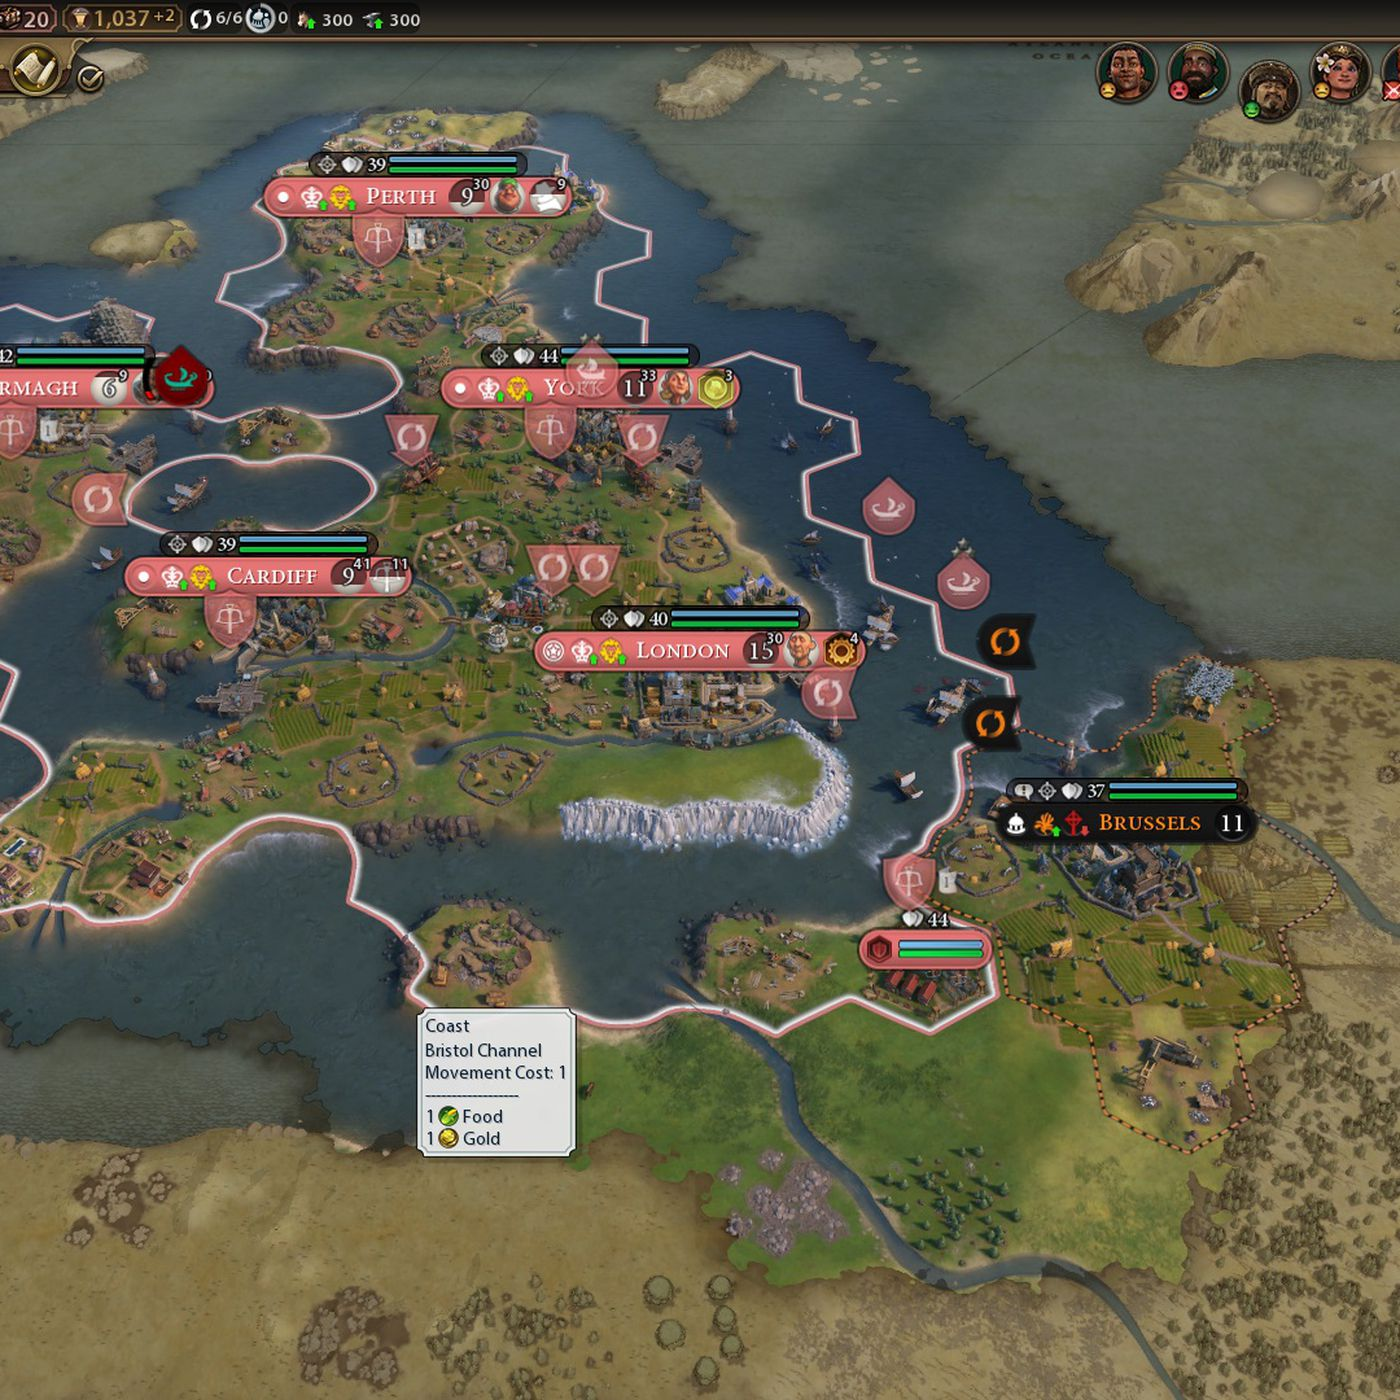 The joy of Civilization 6's giant, real-world maps - Polygon Giant Maps on green dragon map, draw map, food lion map, interstellar map, small map, columbia association map, chronicle of a death foretold map, walmart map, all quiet on the western front map, keystone state map, fairy tale map, career map, the red badge of courage map, glass wall map, brem mall map, korea map, the living desert map, large map, martin's map,